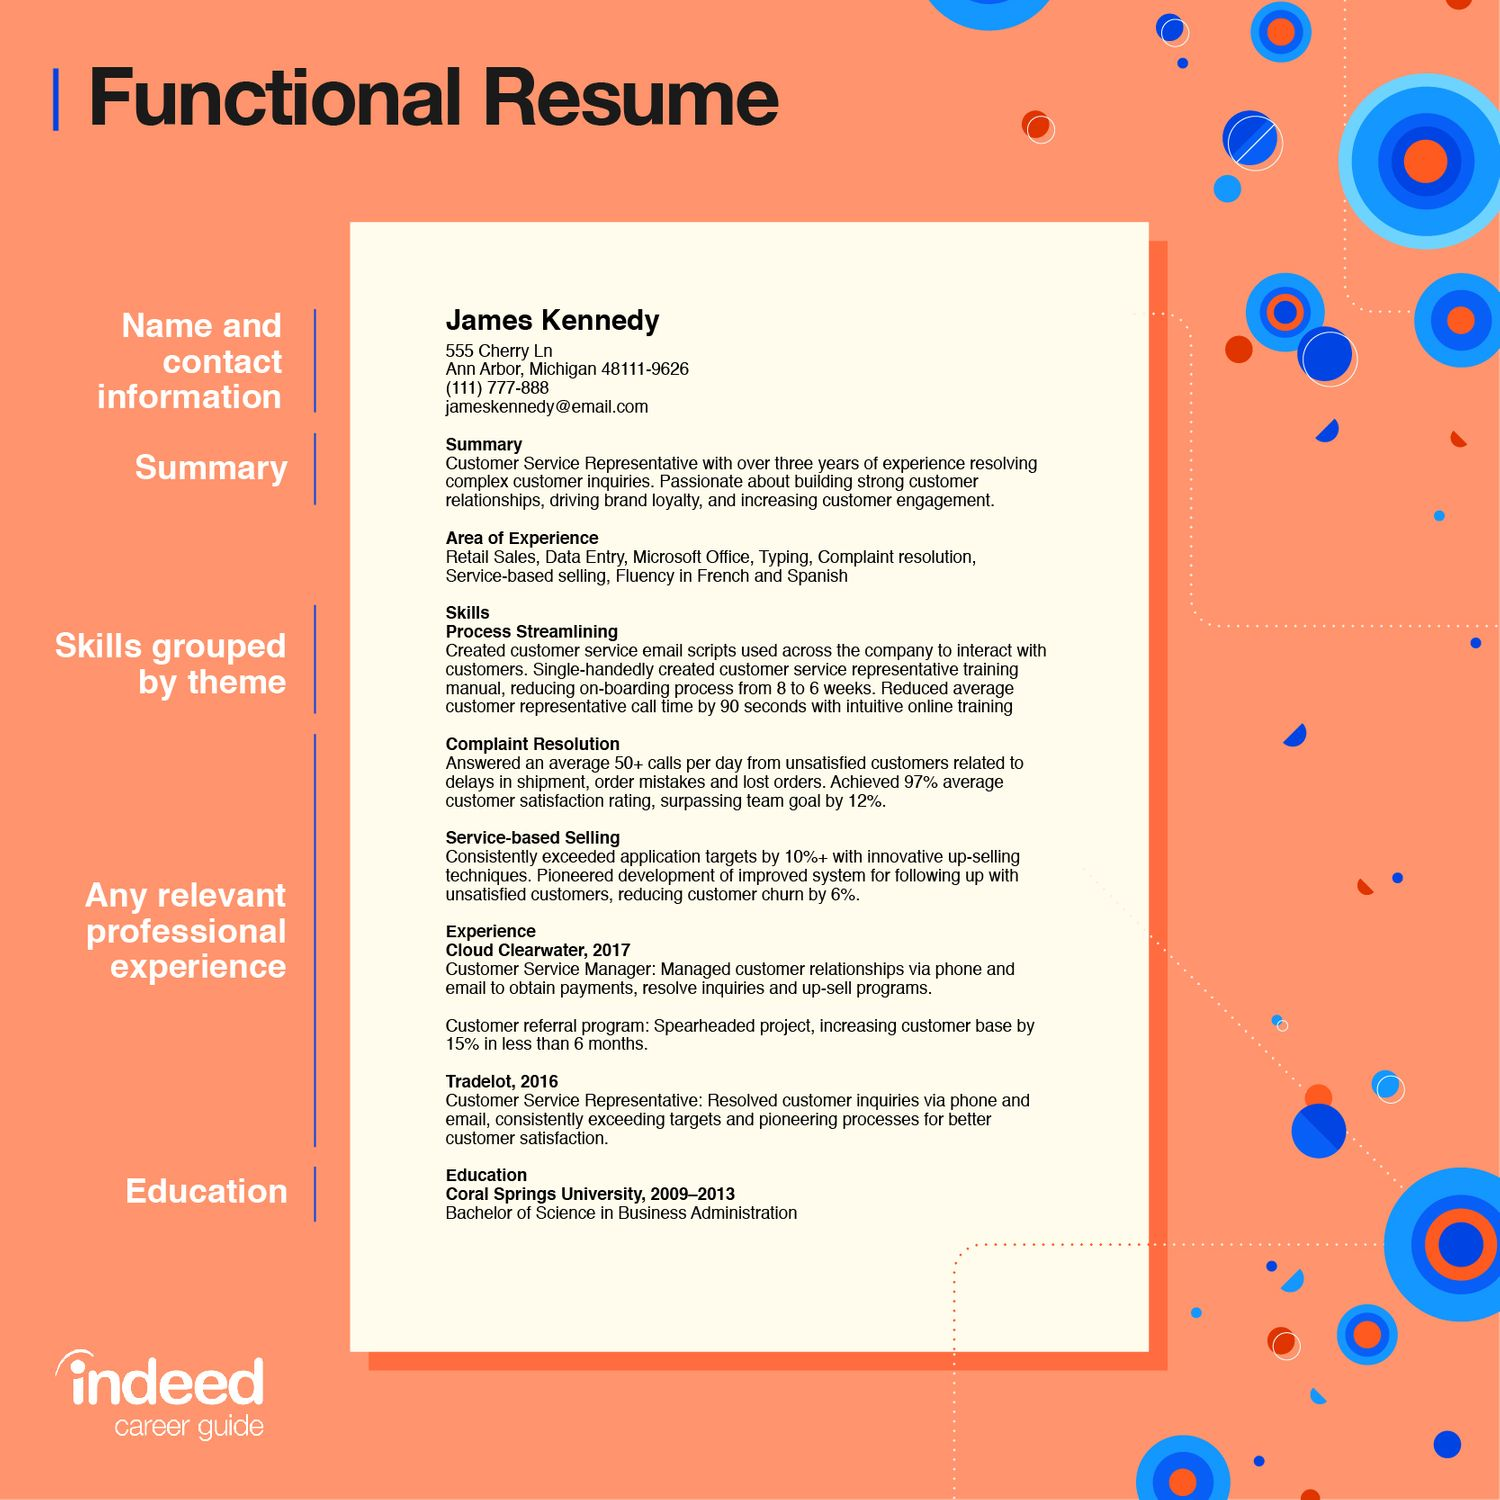 functional resume definition tips and examples indeed resized lash extension artist seo Resume Functional Resume Examples 2020